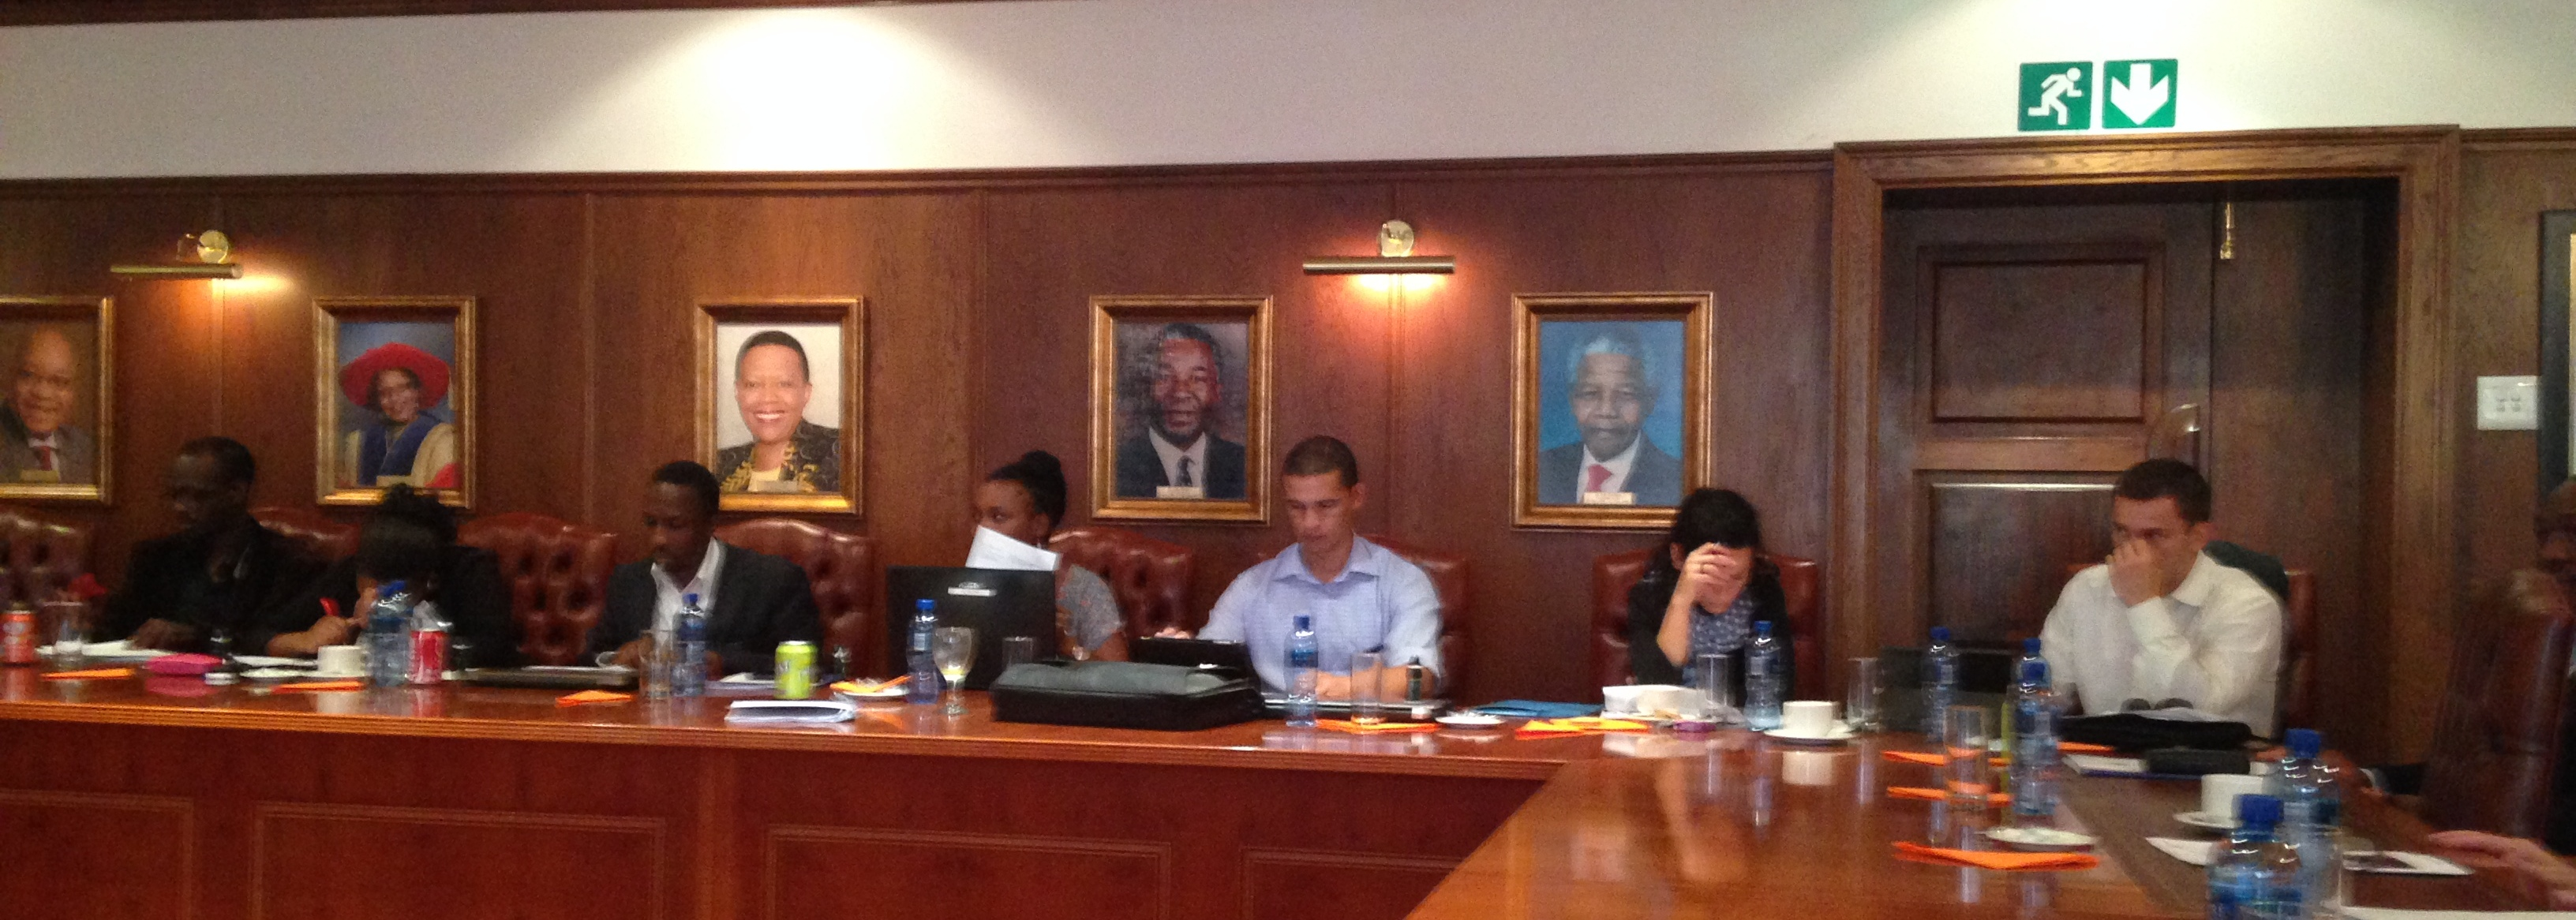 Conference at Vaal University